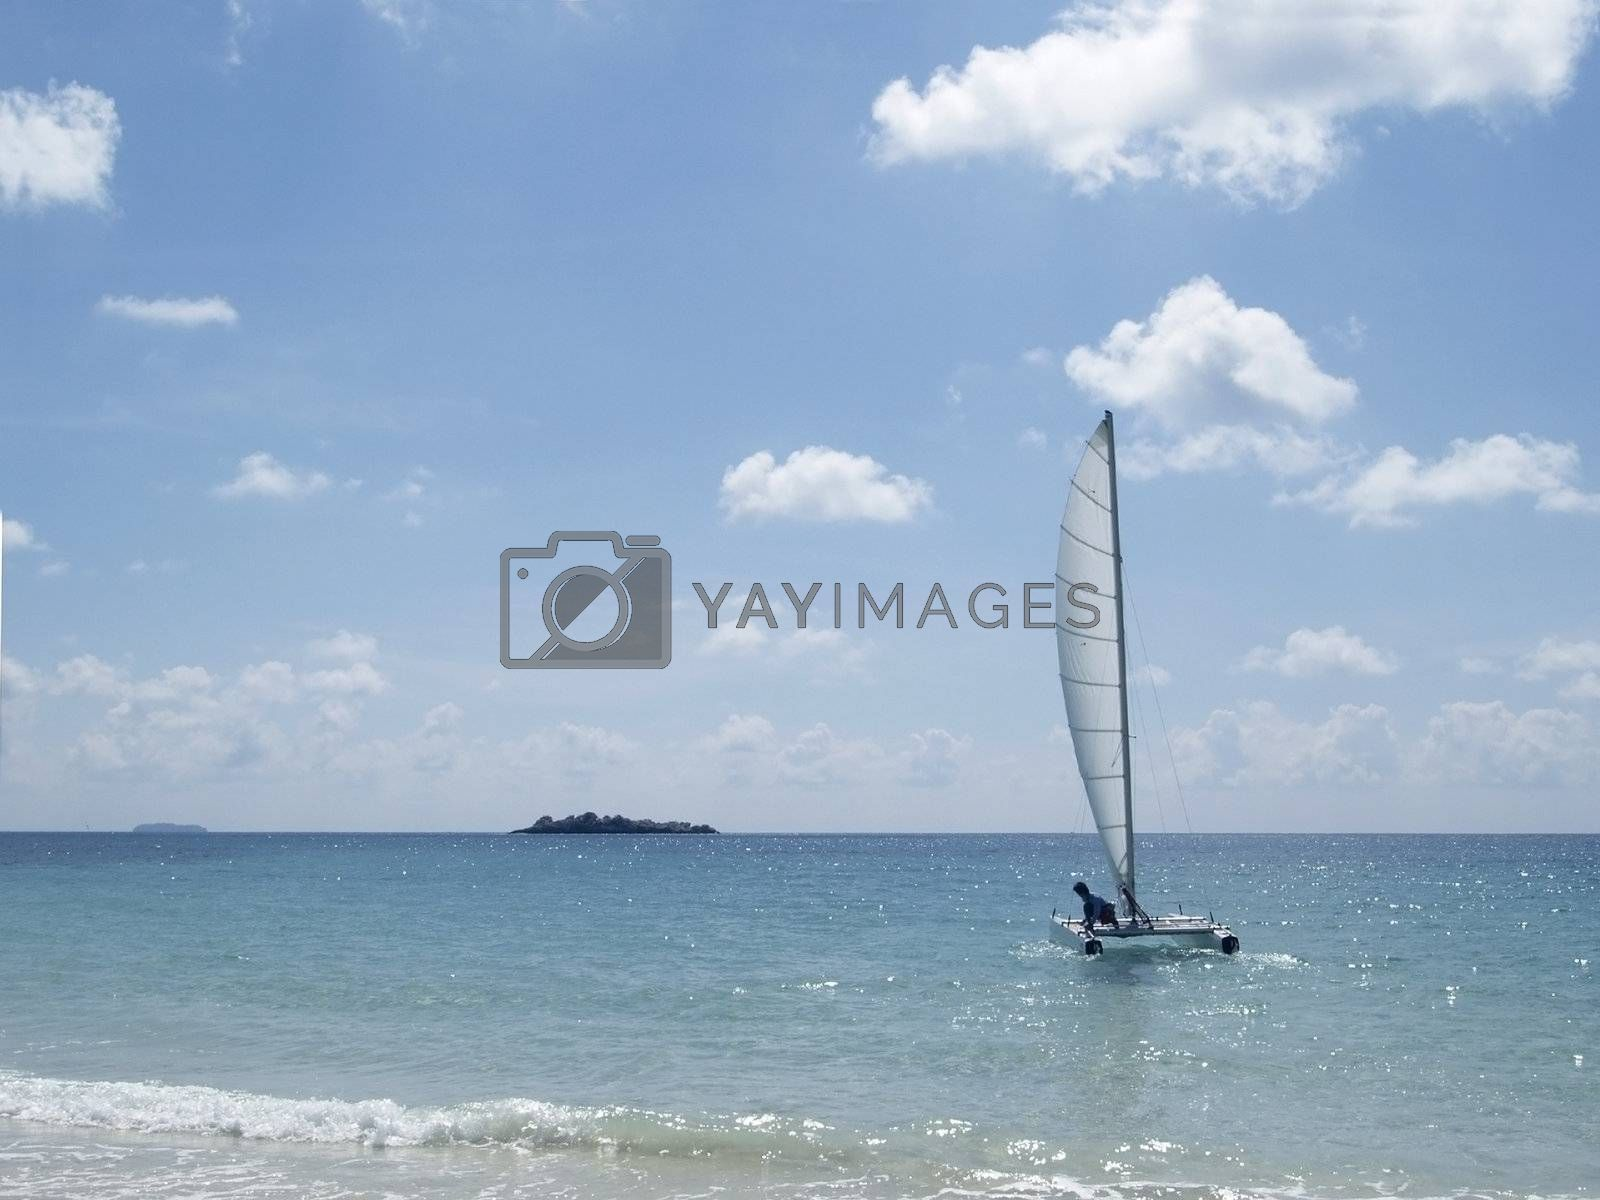 Catamaran at sea by epixx